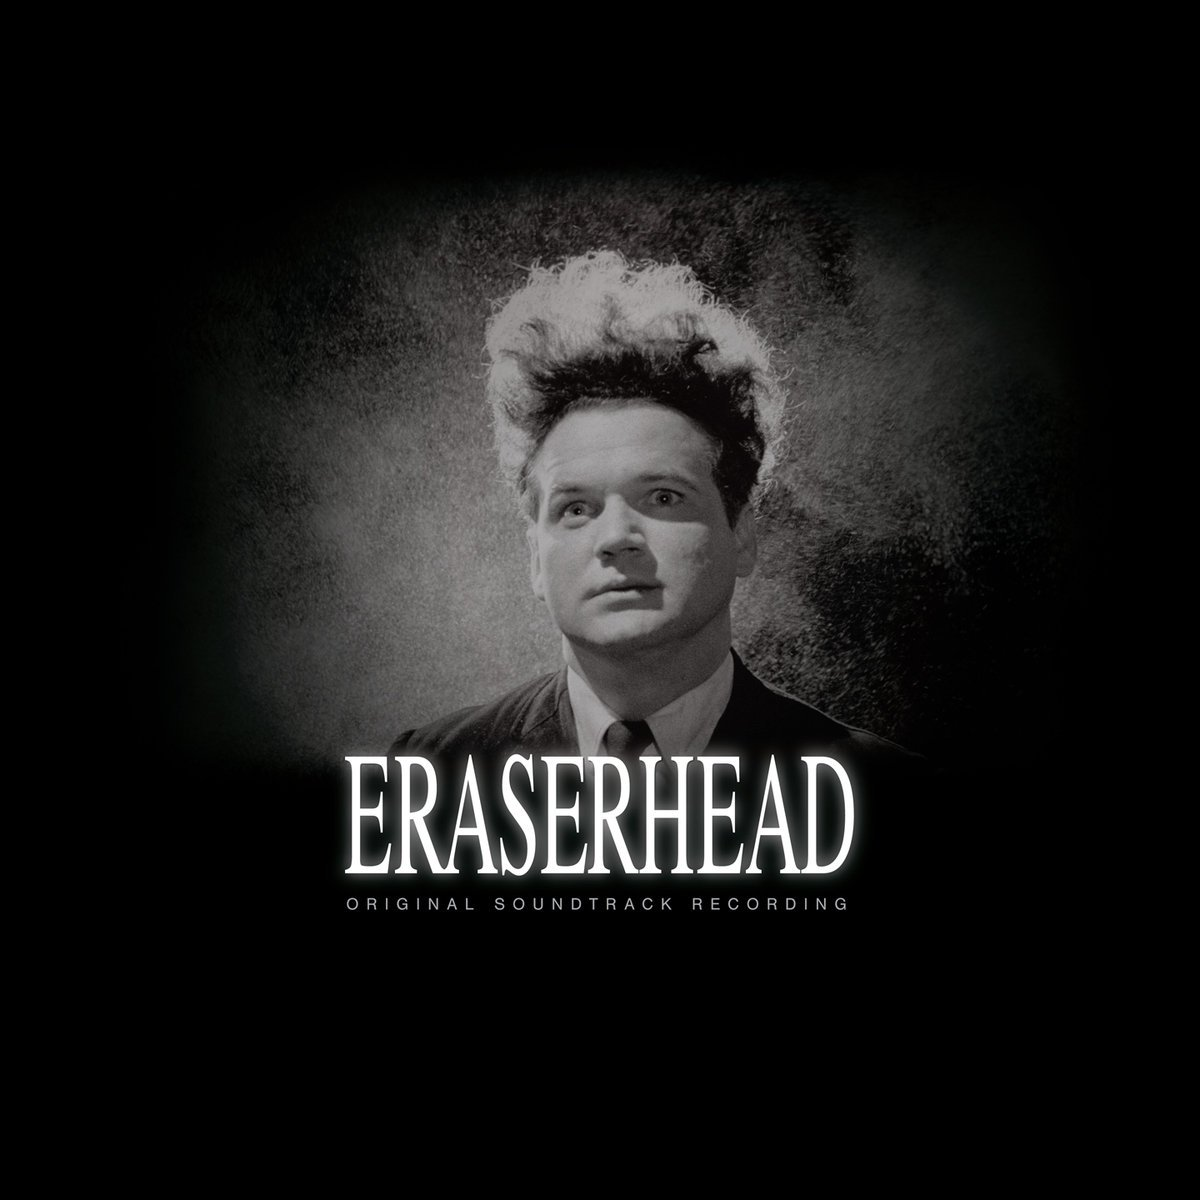 The soundtrack to David Lynch's cult surreal film Eraserhead is back o...